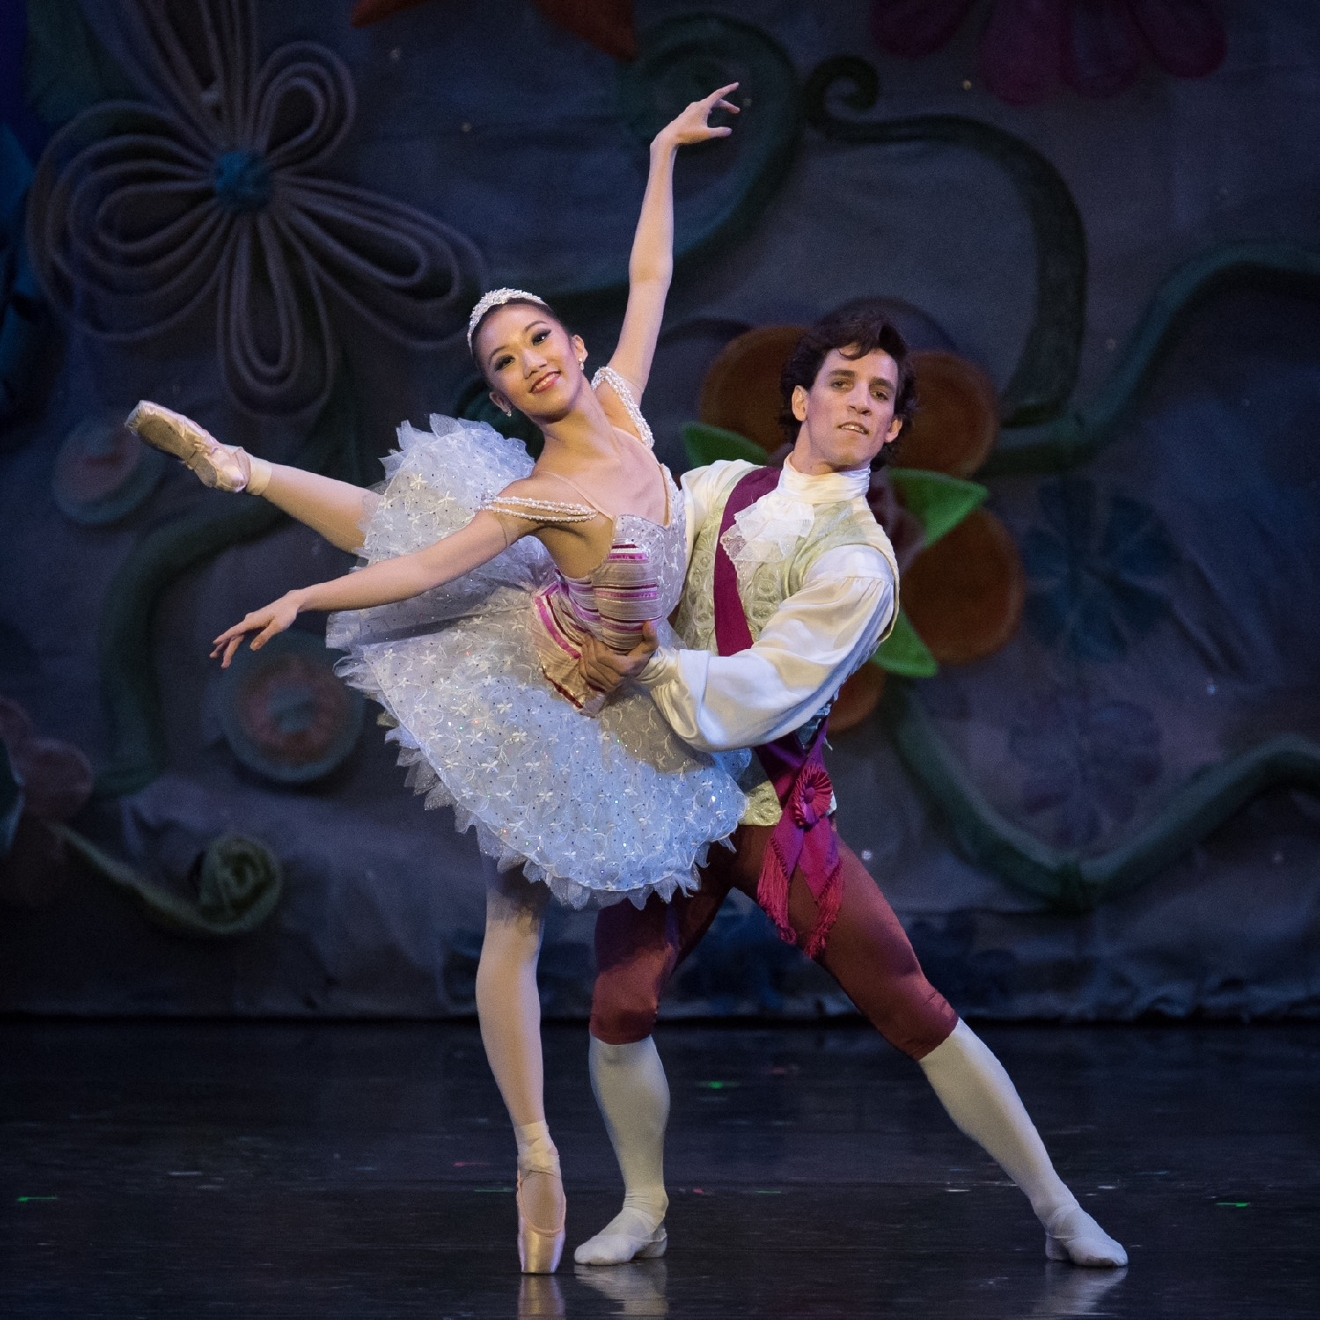 Cincinnati Ballet Soloist Chisako Oga and Principal Dancer Cervilio Miguel Amador as Sugar Plum Fairy and Cotton Candy Cavalier in Cincinnati Ballet's The Nutcracker, performed at the Kennedy Center. / Image: Peter Mueller